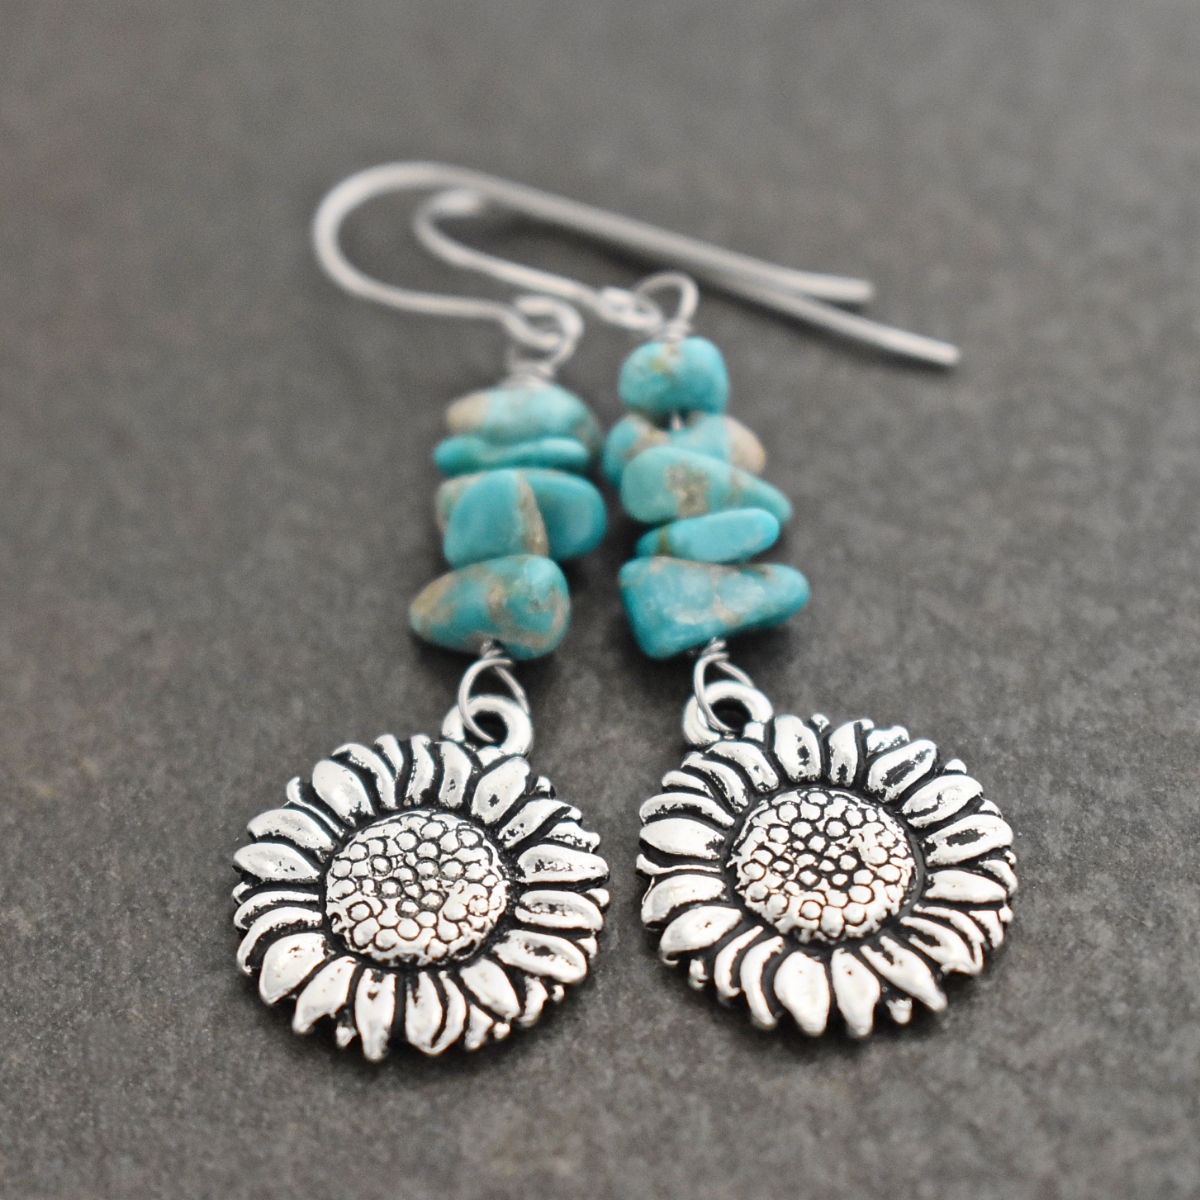 Sunflowers with turquoise earrings (3)